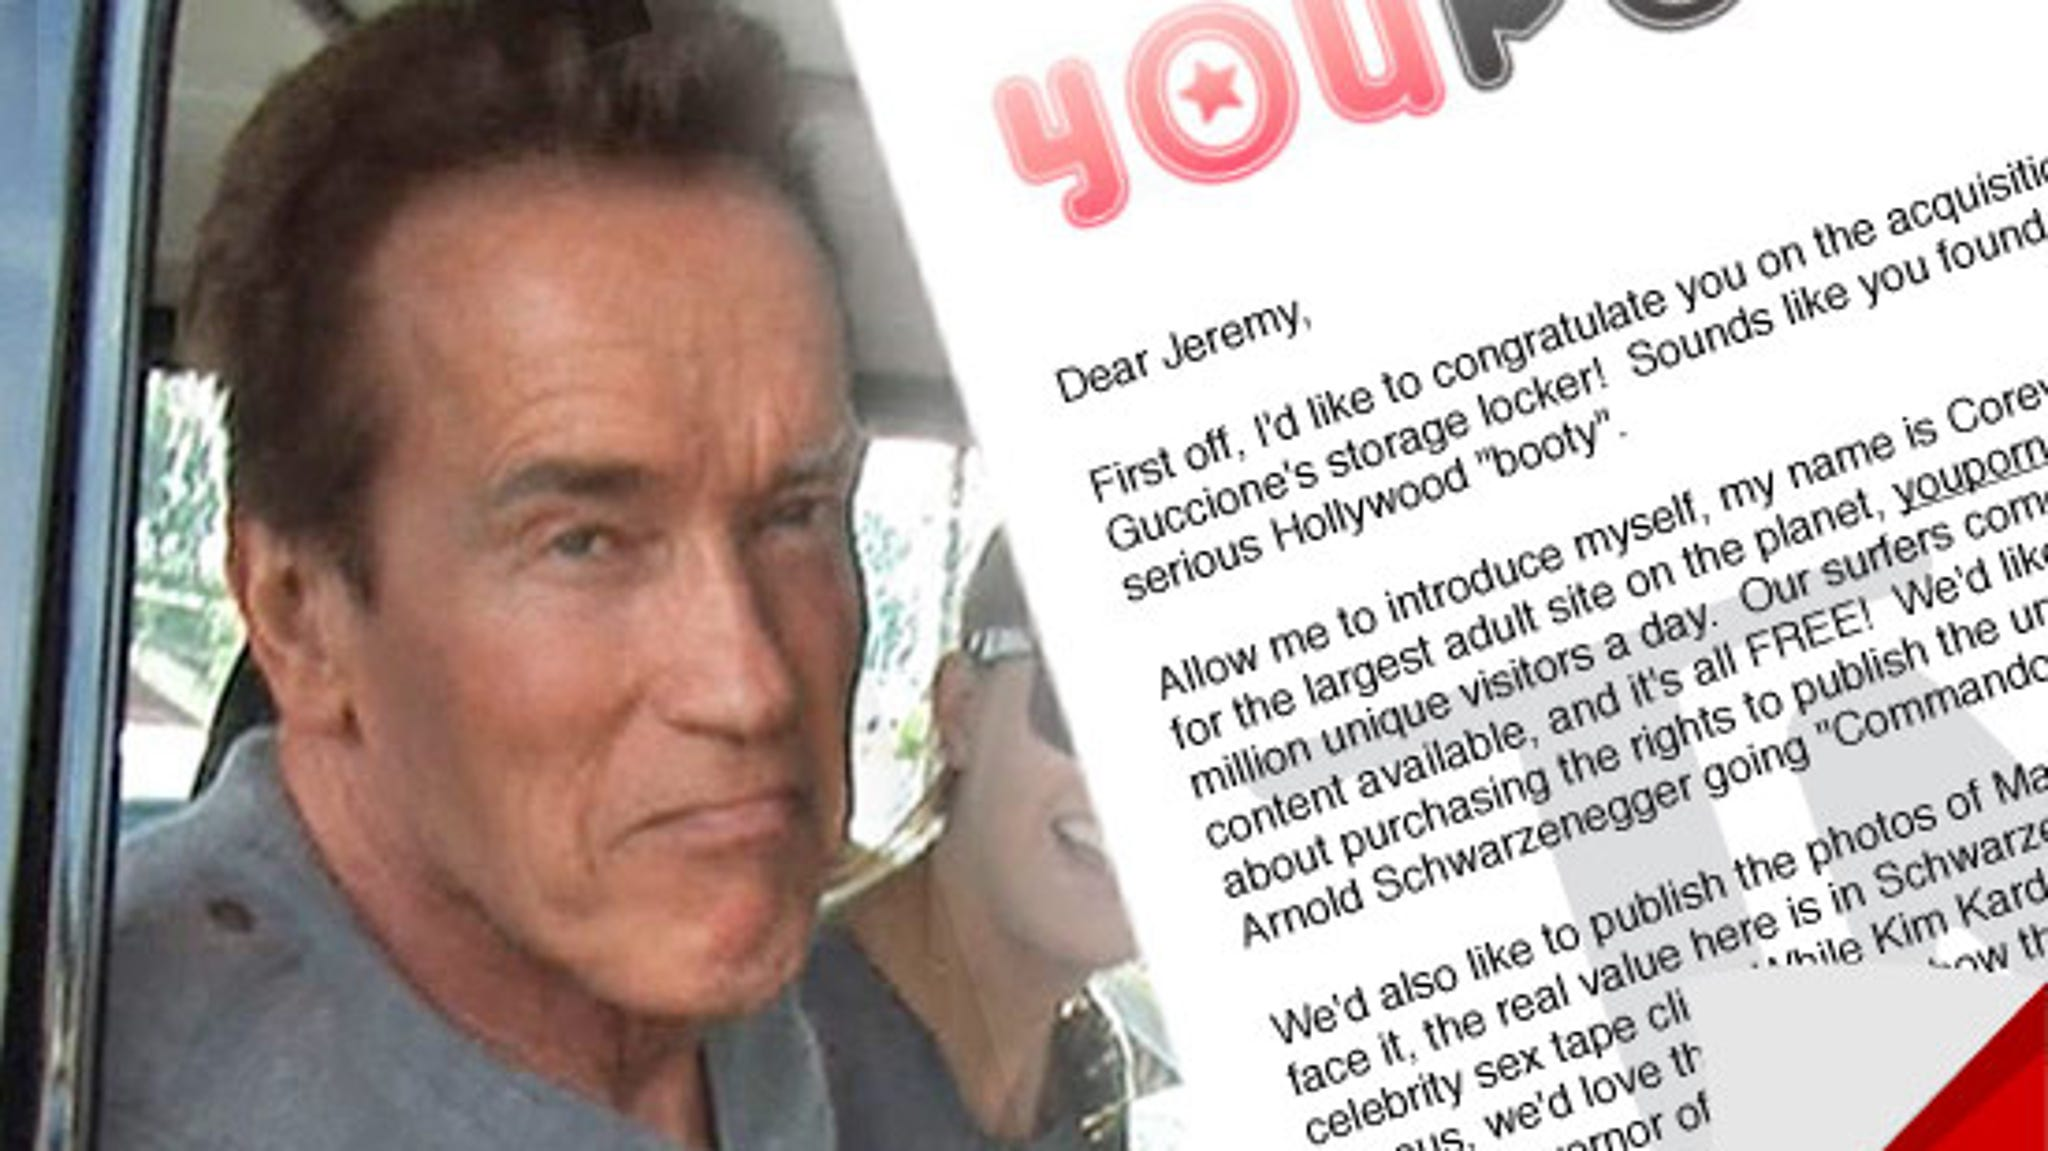 Arnold Schwarzenegger sex photo could sell for $150,000